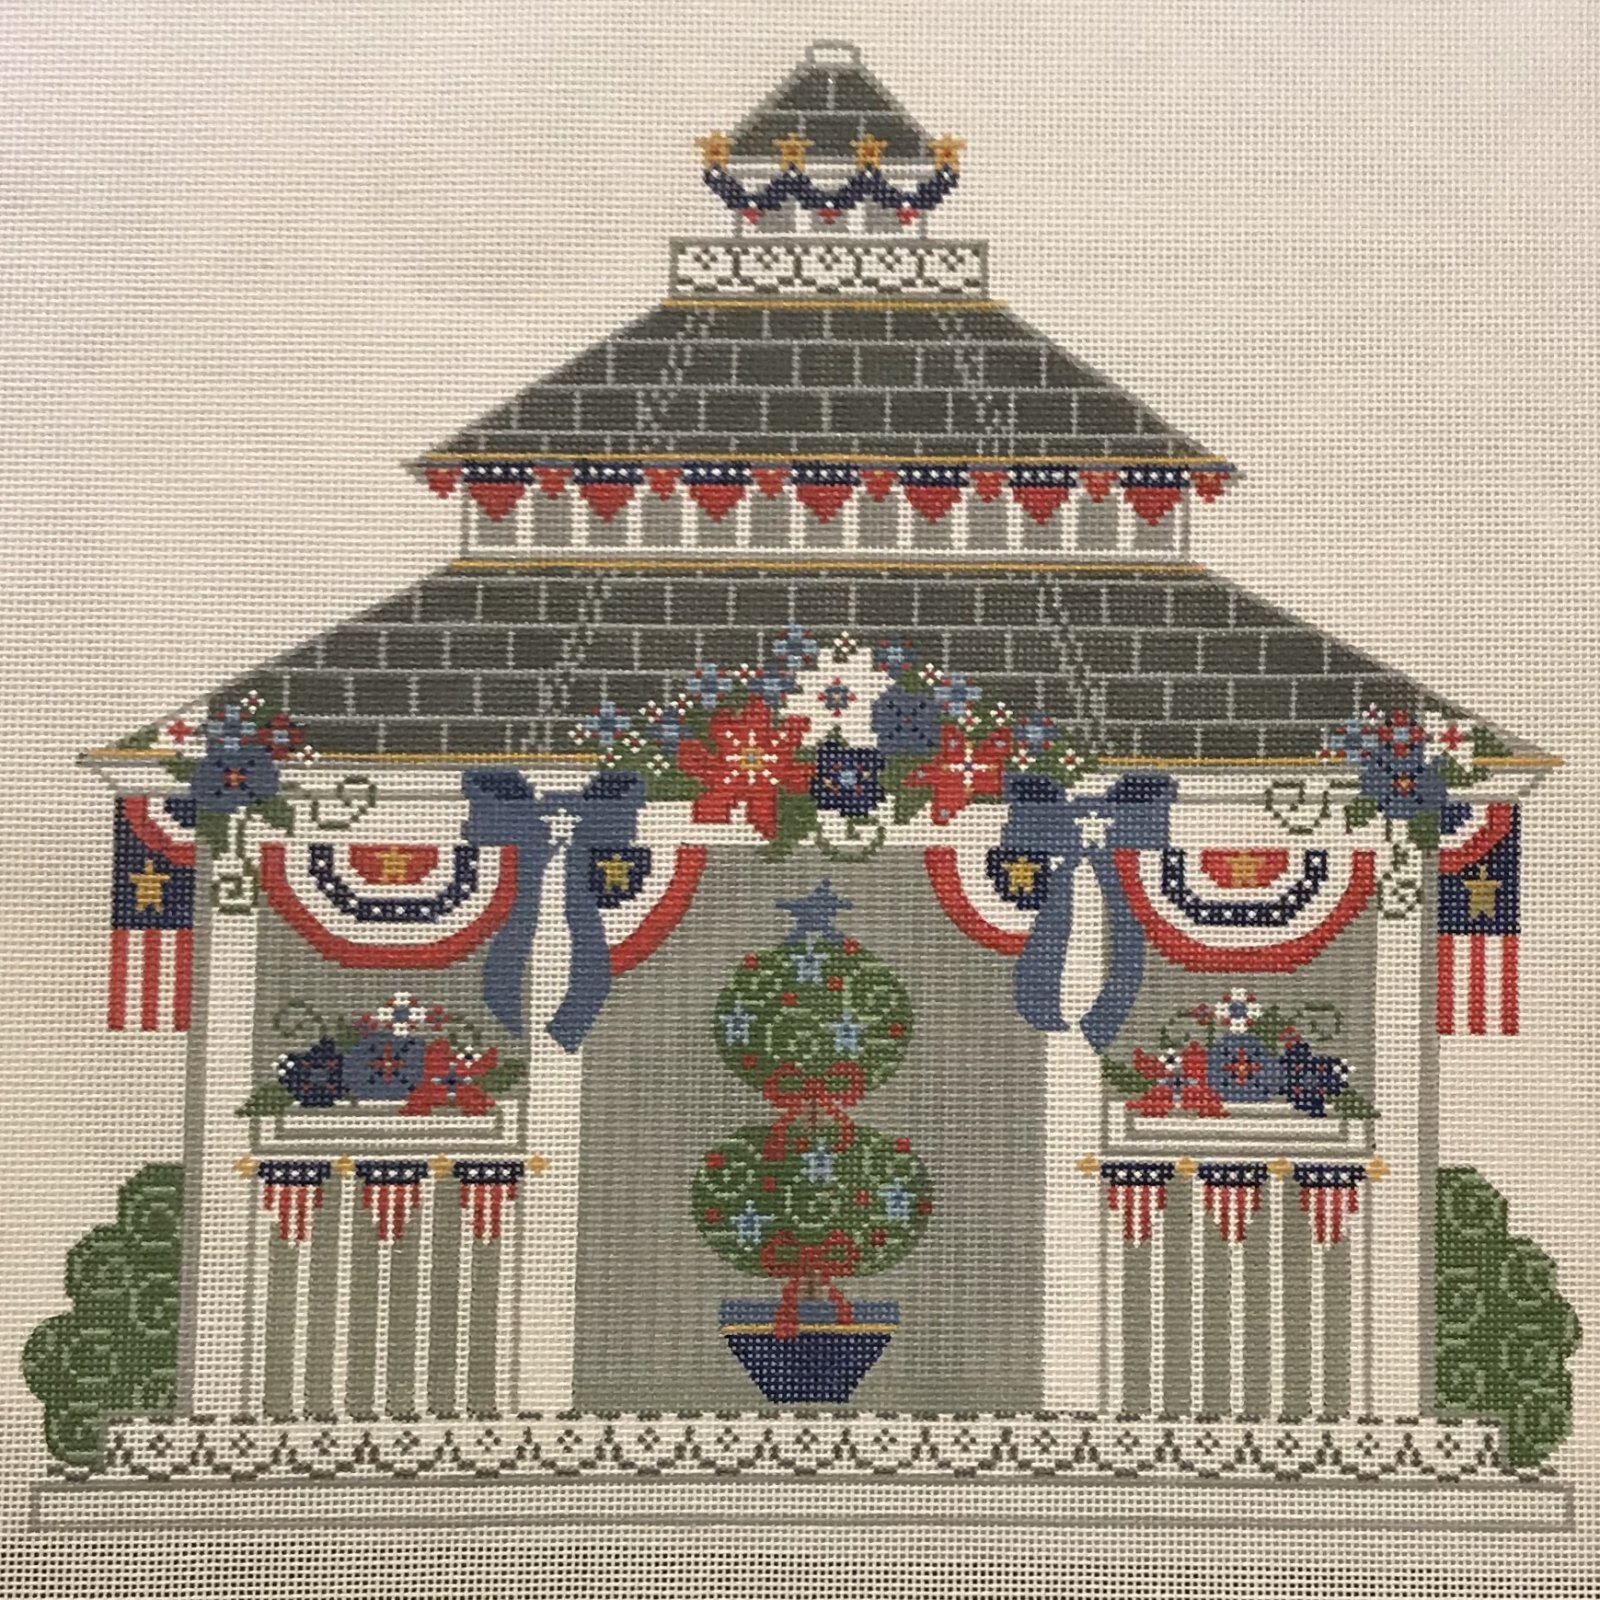 4th of July Gazebo with Stitch Guide